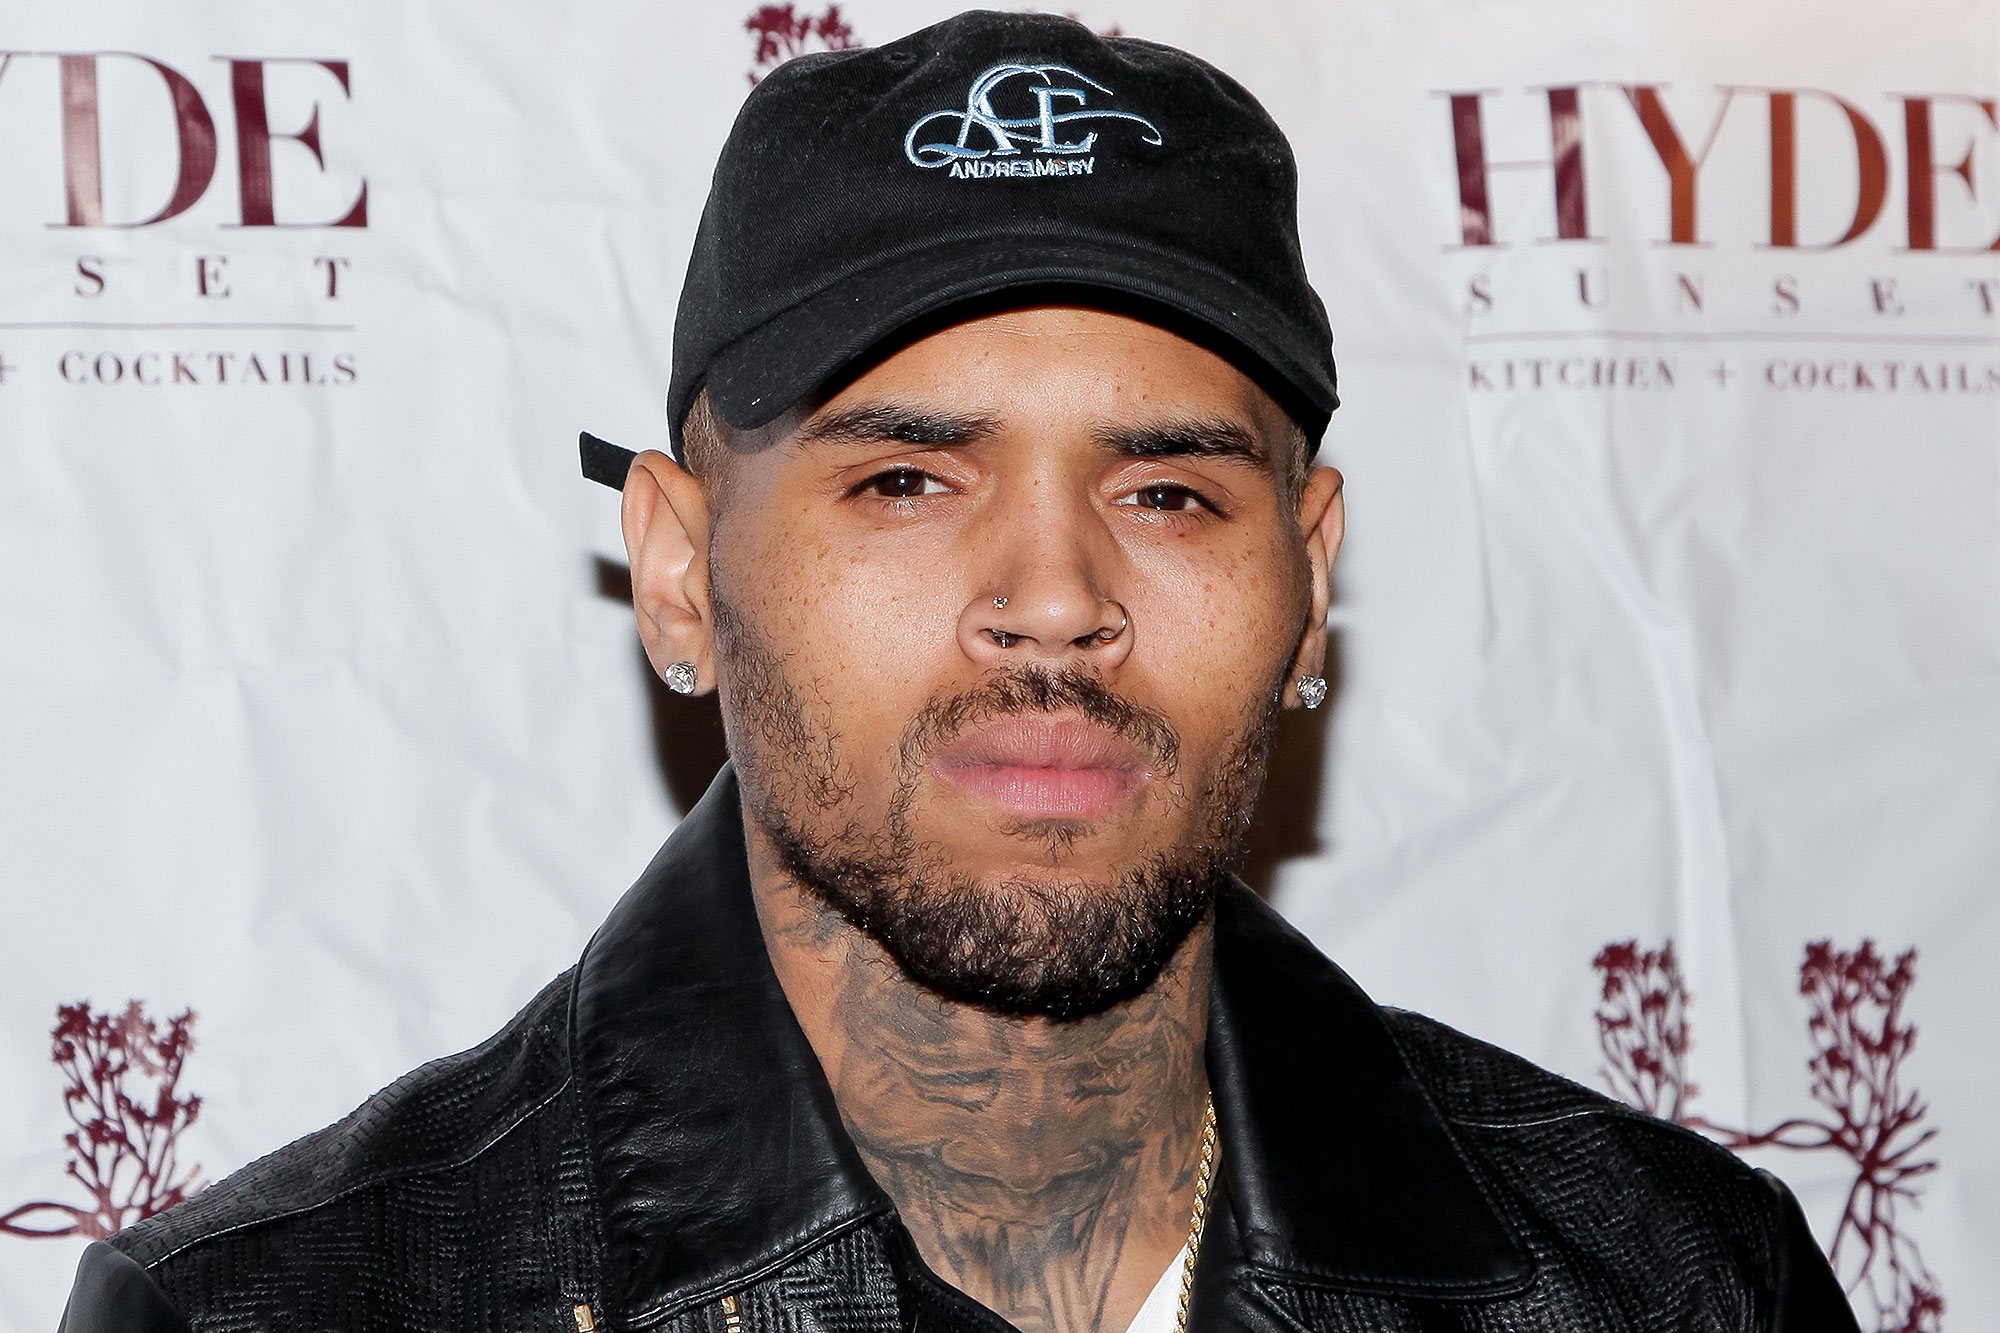 WEST HOLLYWOOD, CA - NOVEMBER 04:  Chris Brown attends 'The Lost Warhols' Collection exhibit at HYDE Sunset: Kitchen + Cocktails on November 4, 2015 in West Hollywood, California.  (Photo by Tibrina Hobson/Getty Images)